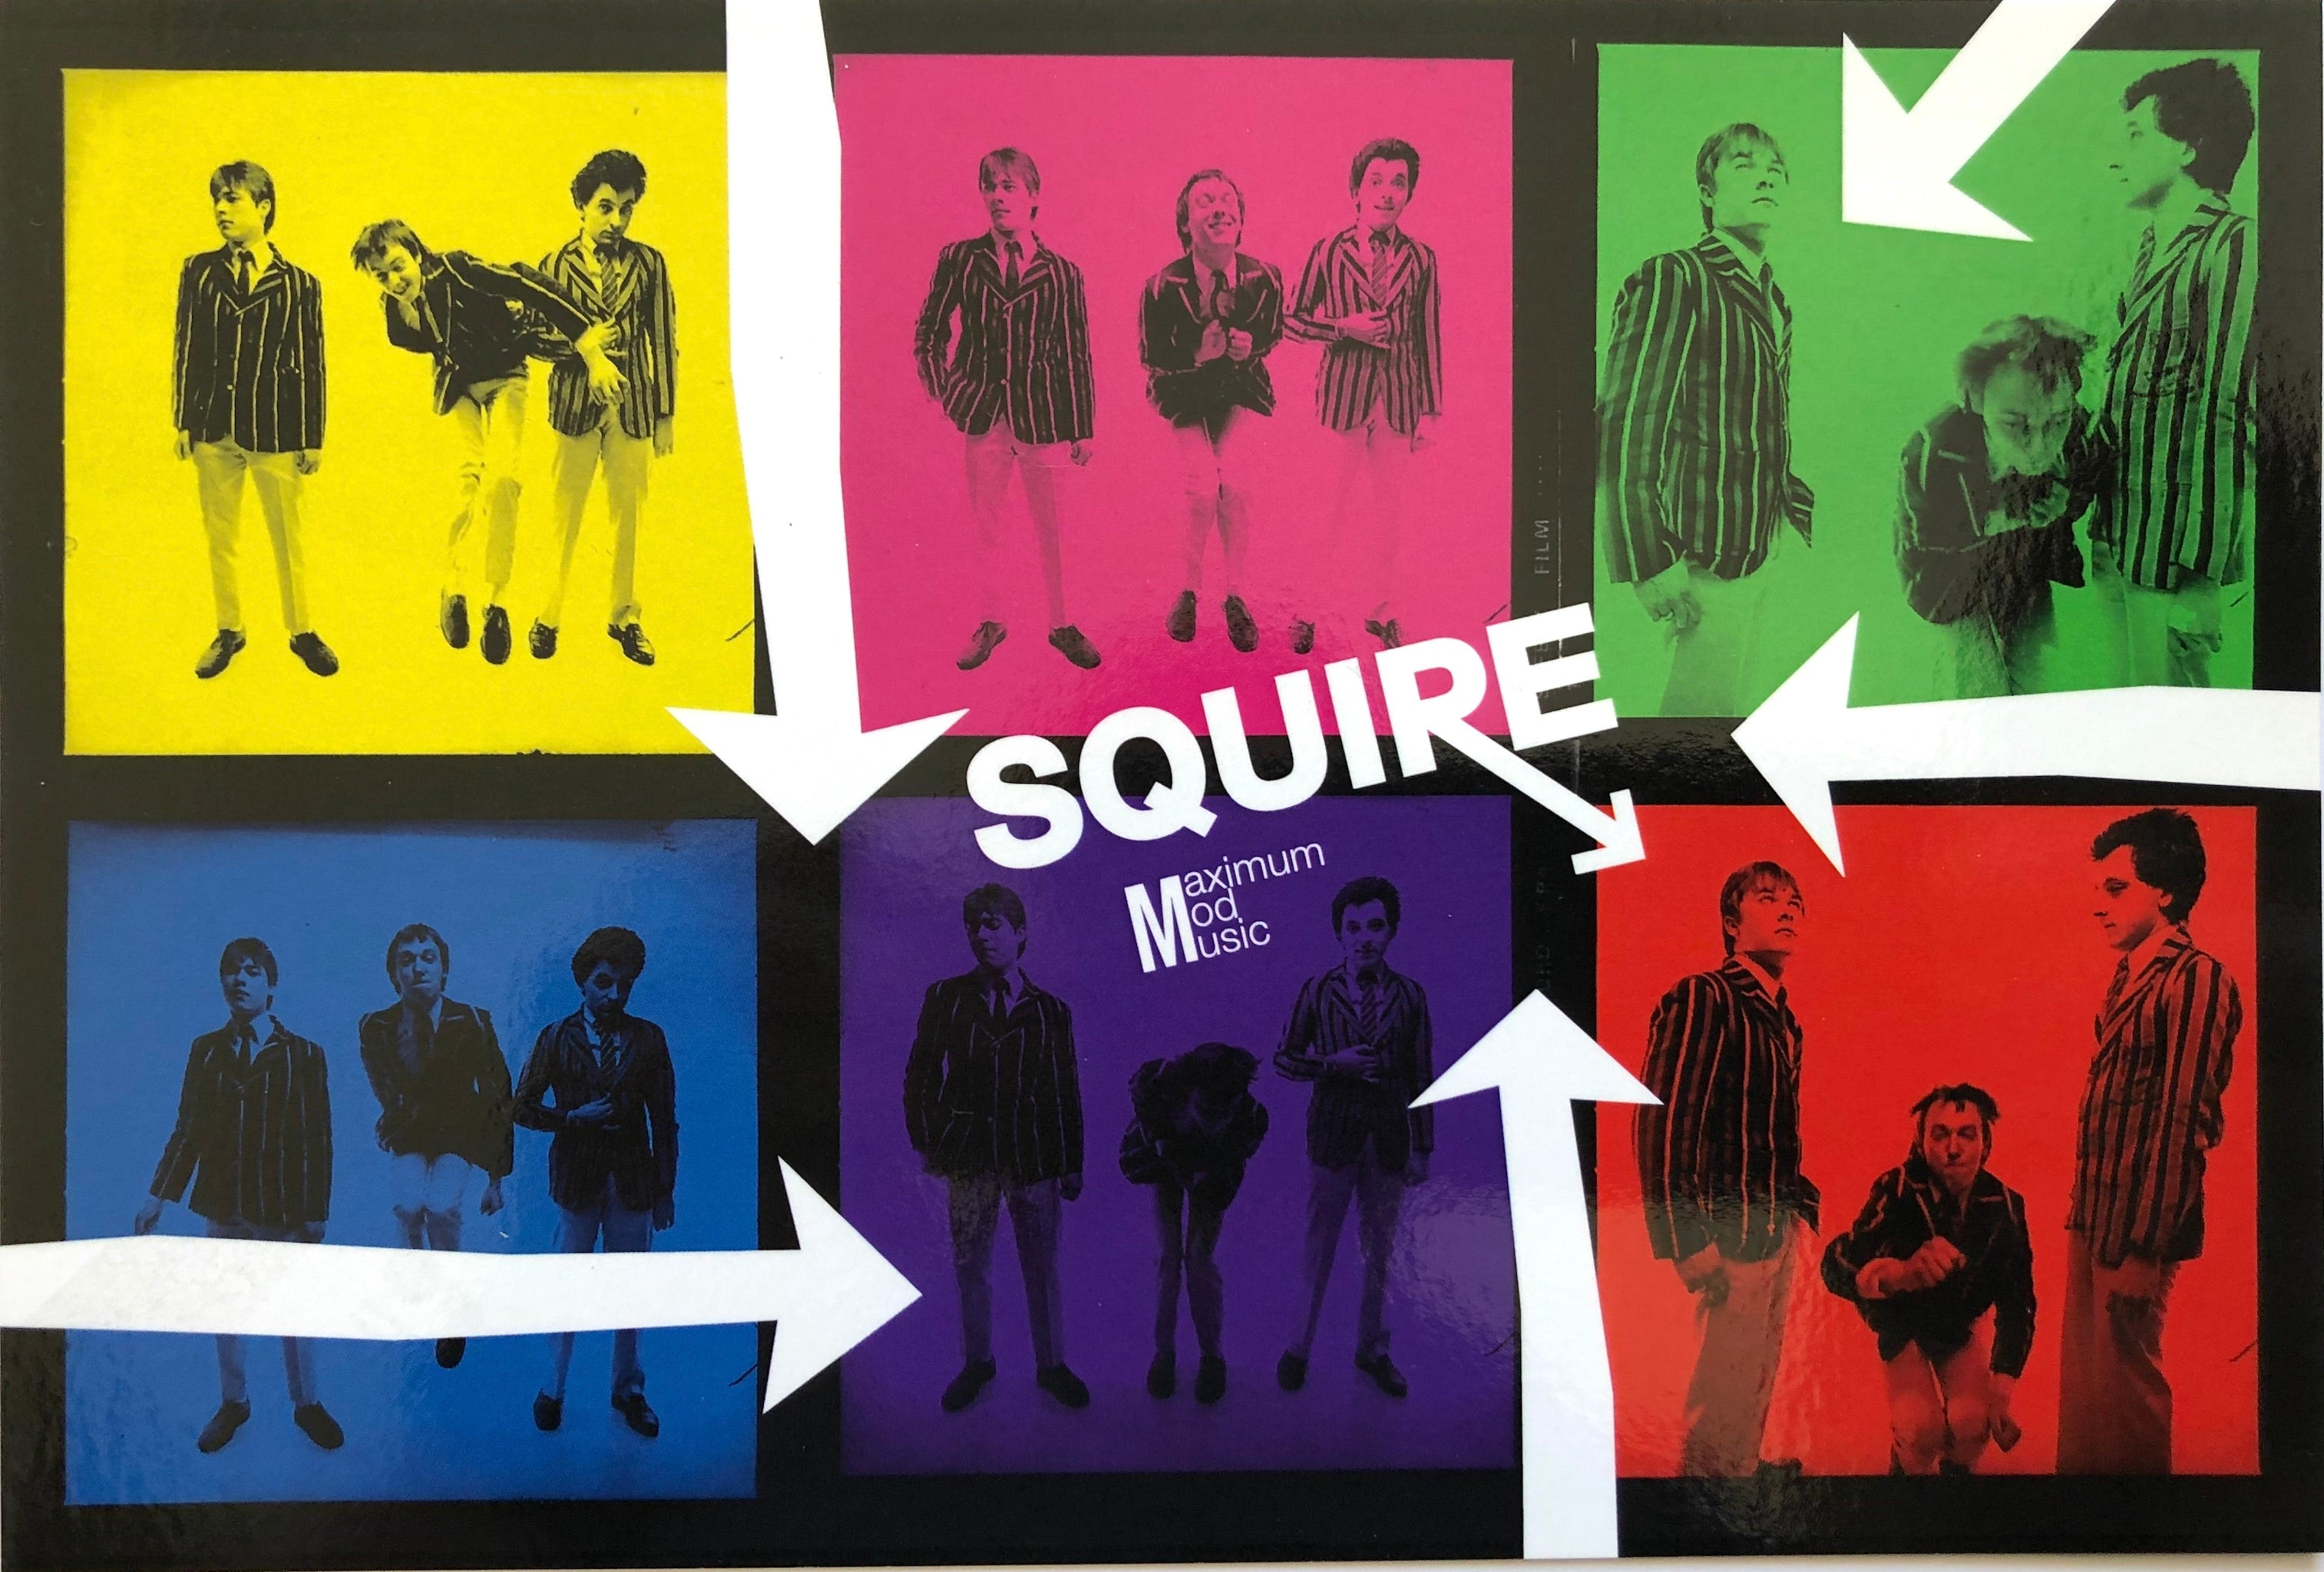 Squire - The Official Squire Fan Club Album - Vinyl LP with special insert